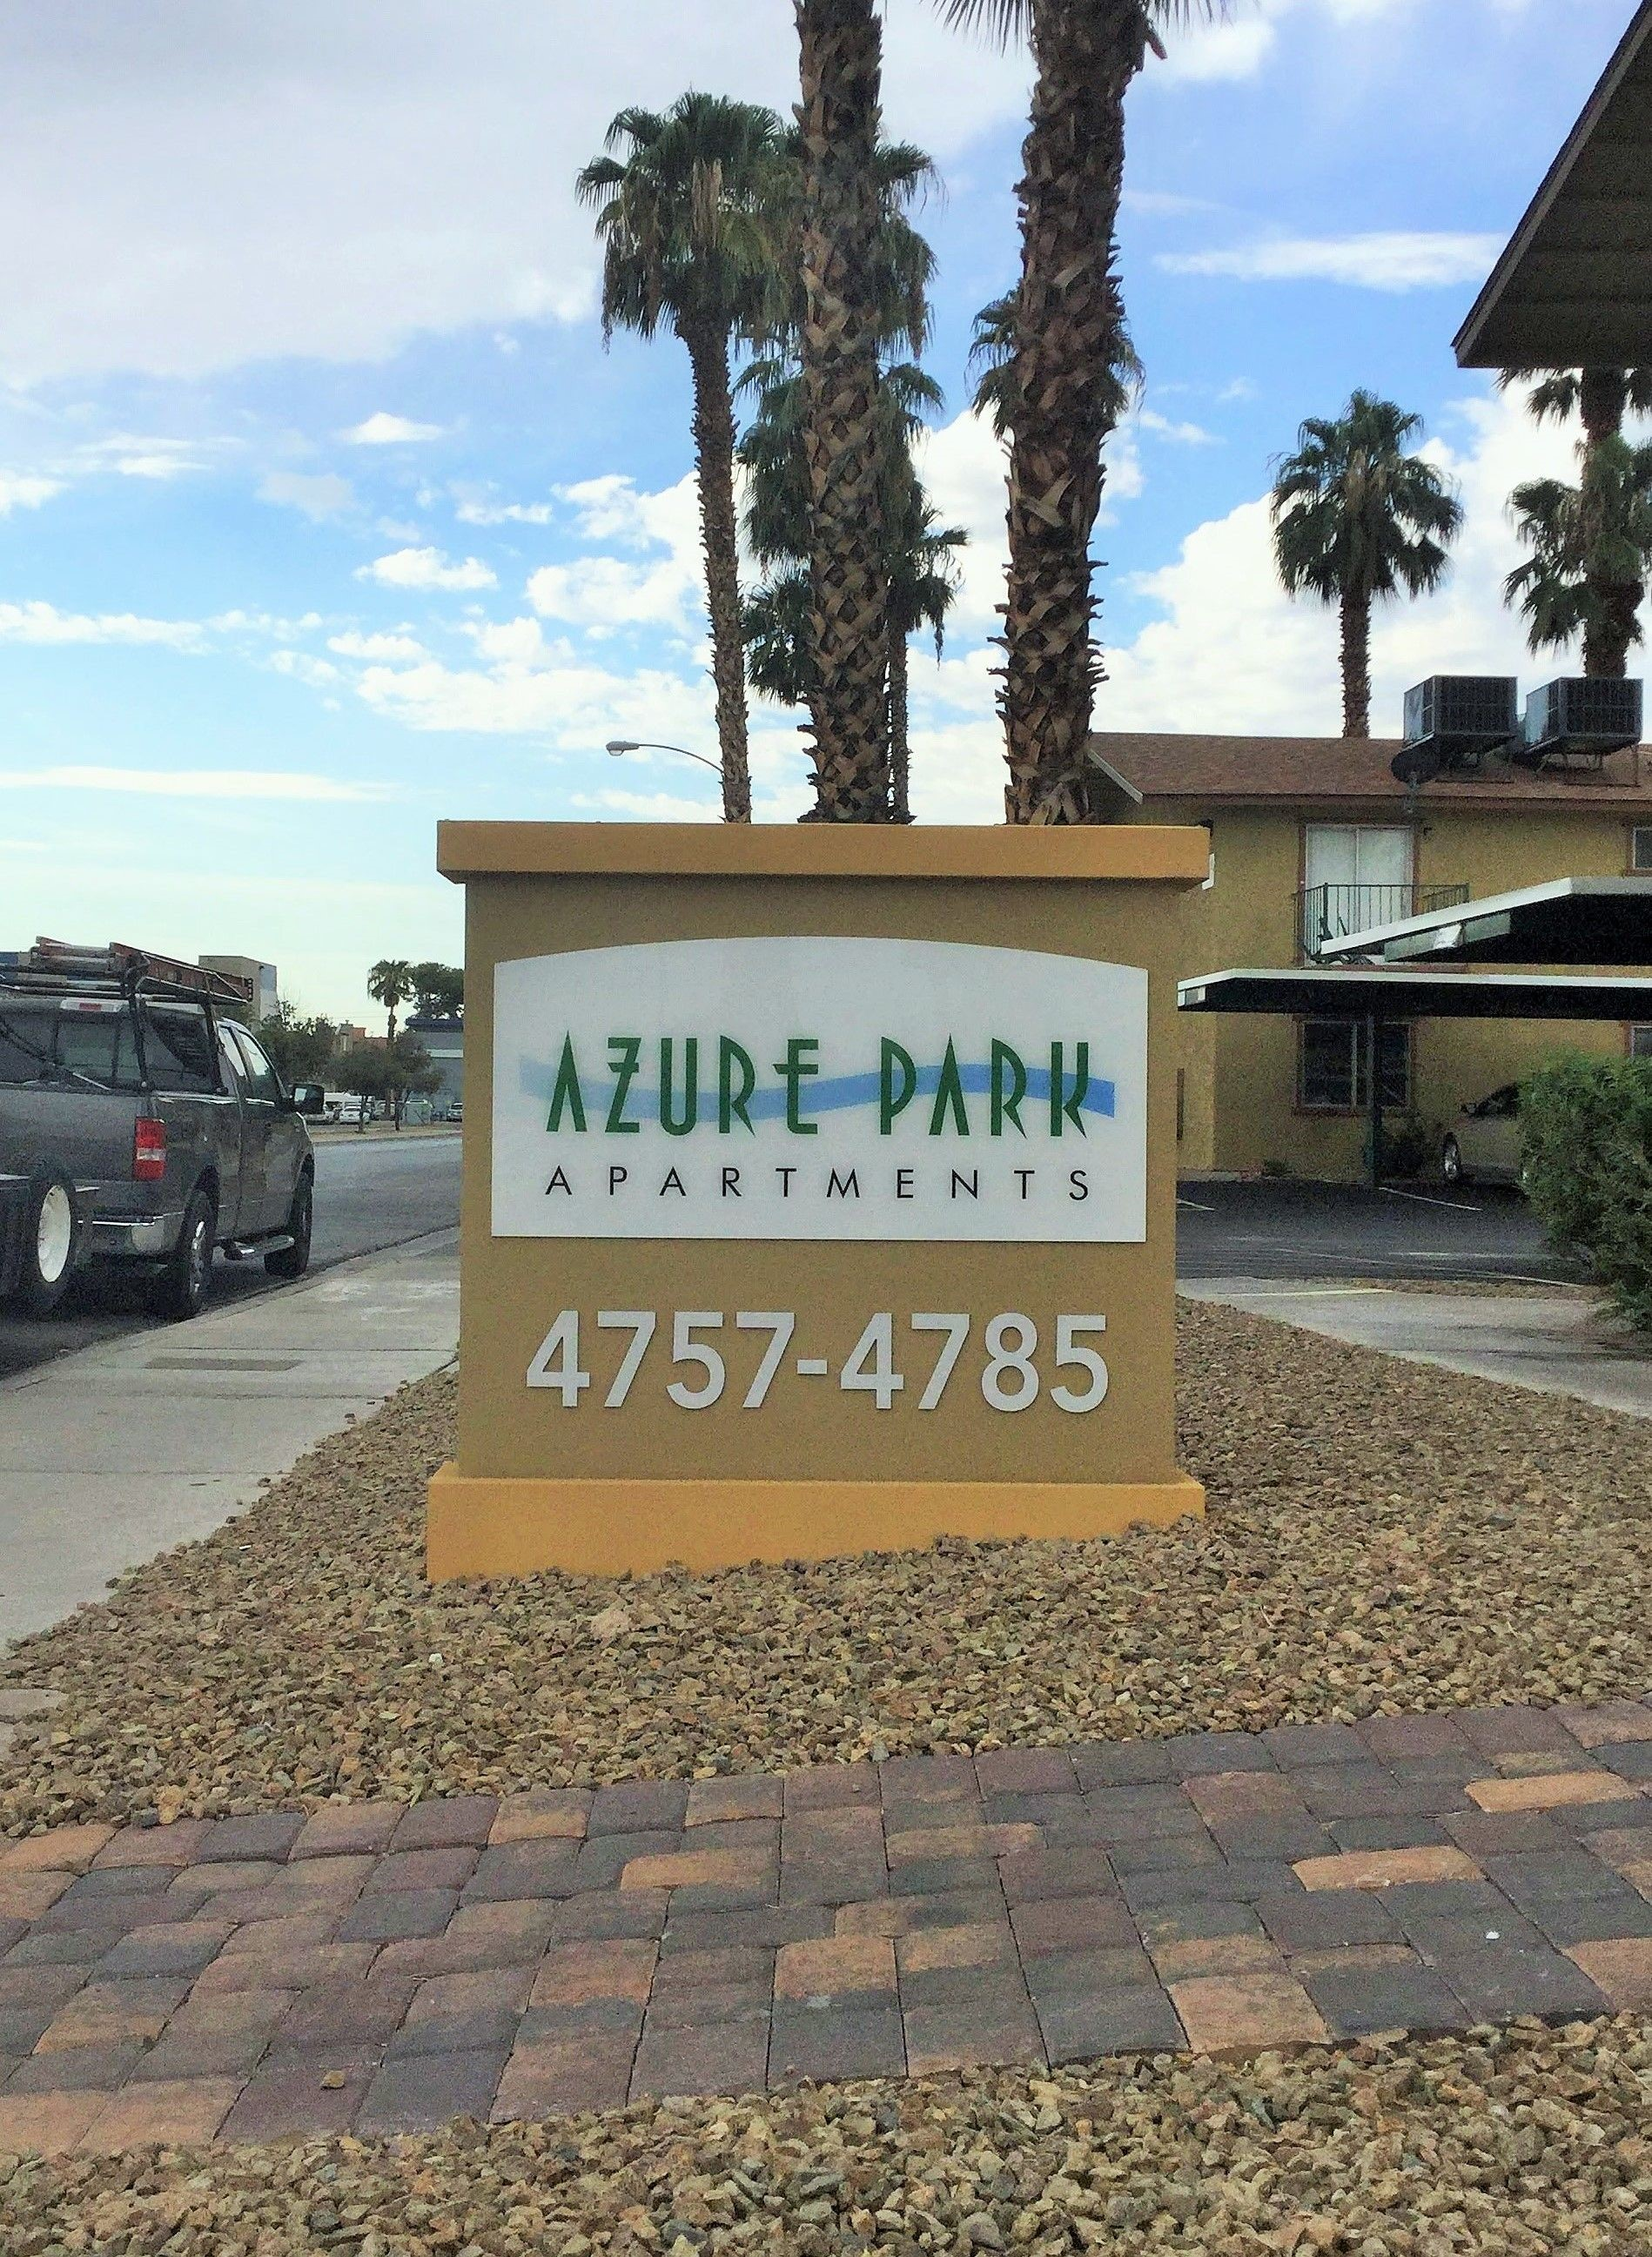 Exterior & Outdoor Signage | Monument Signs | Property Management and Apartment Signs | Las Vegas